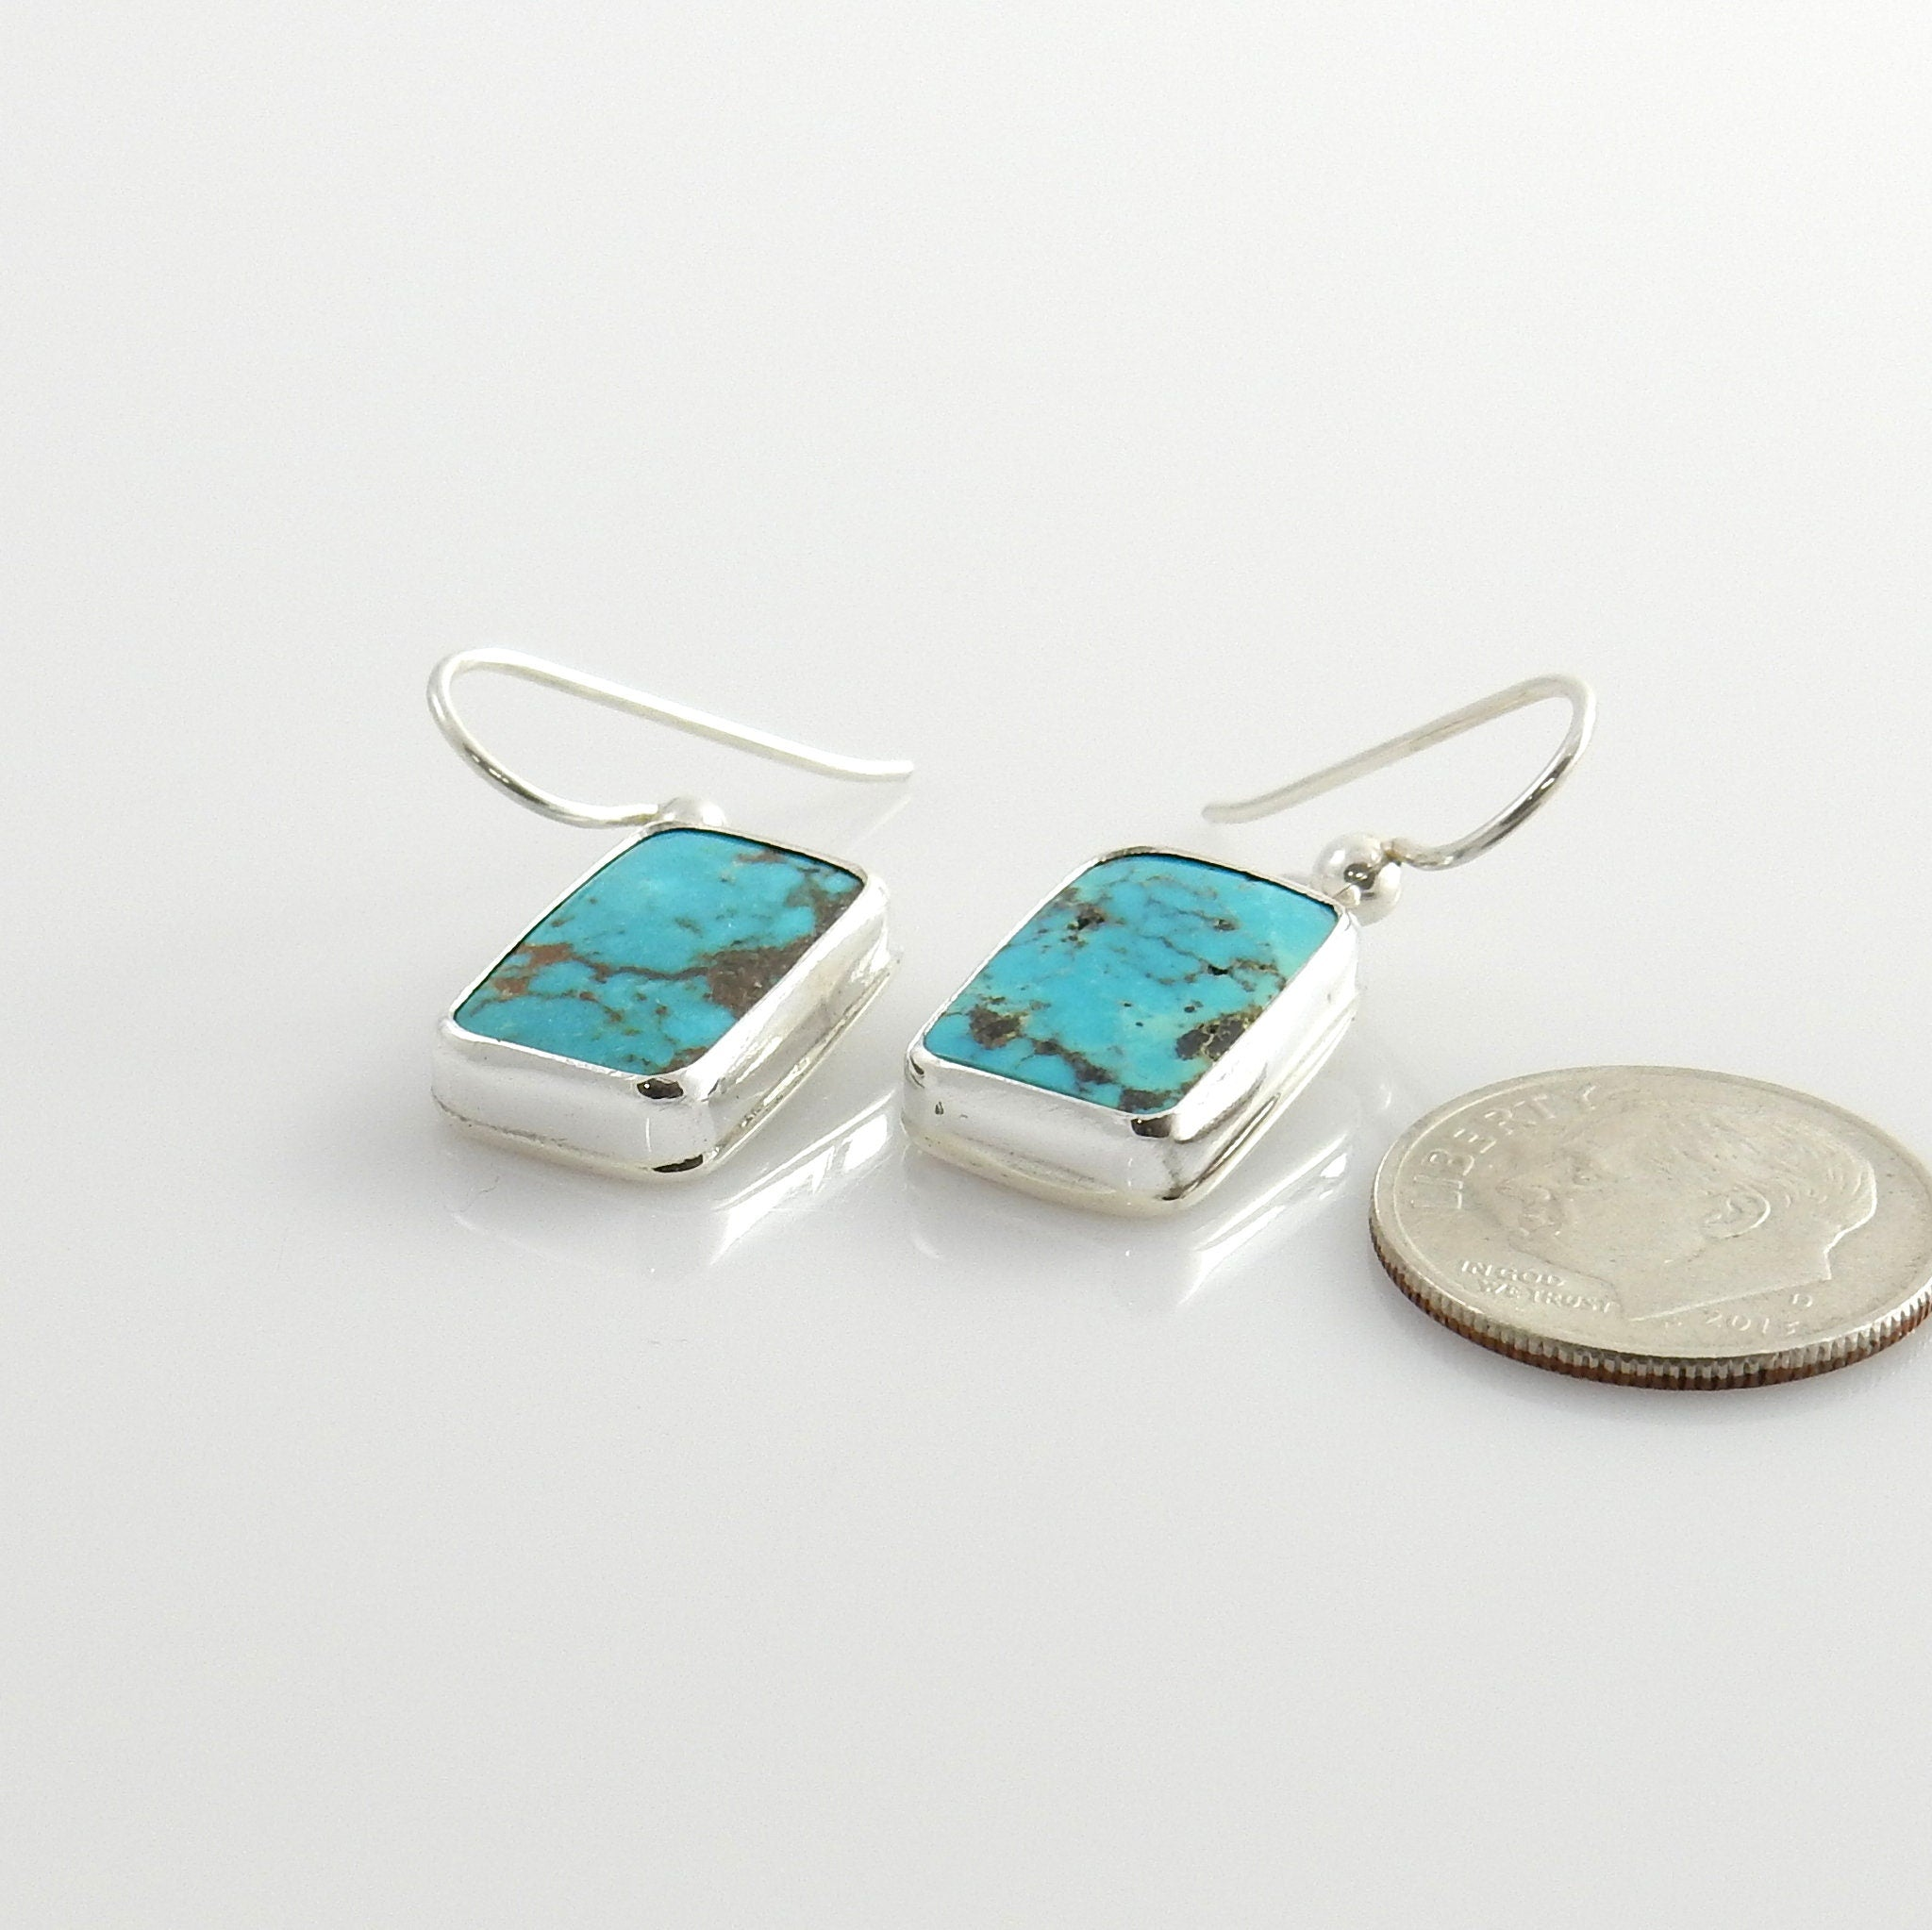 Handmade Sterling Silver Turquoise Dangle Earrings